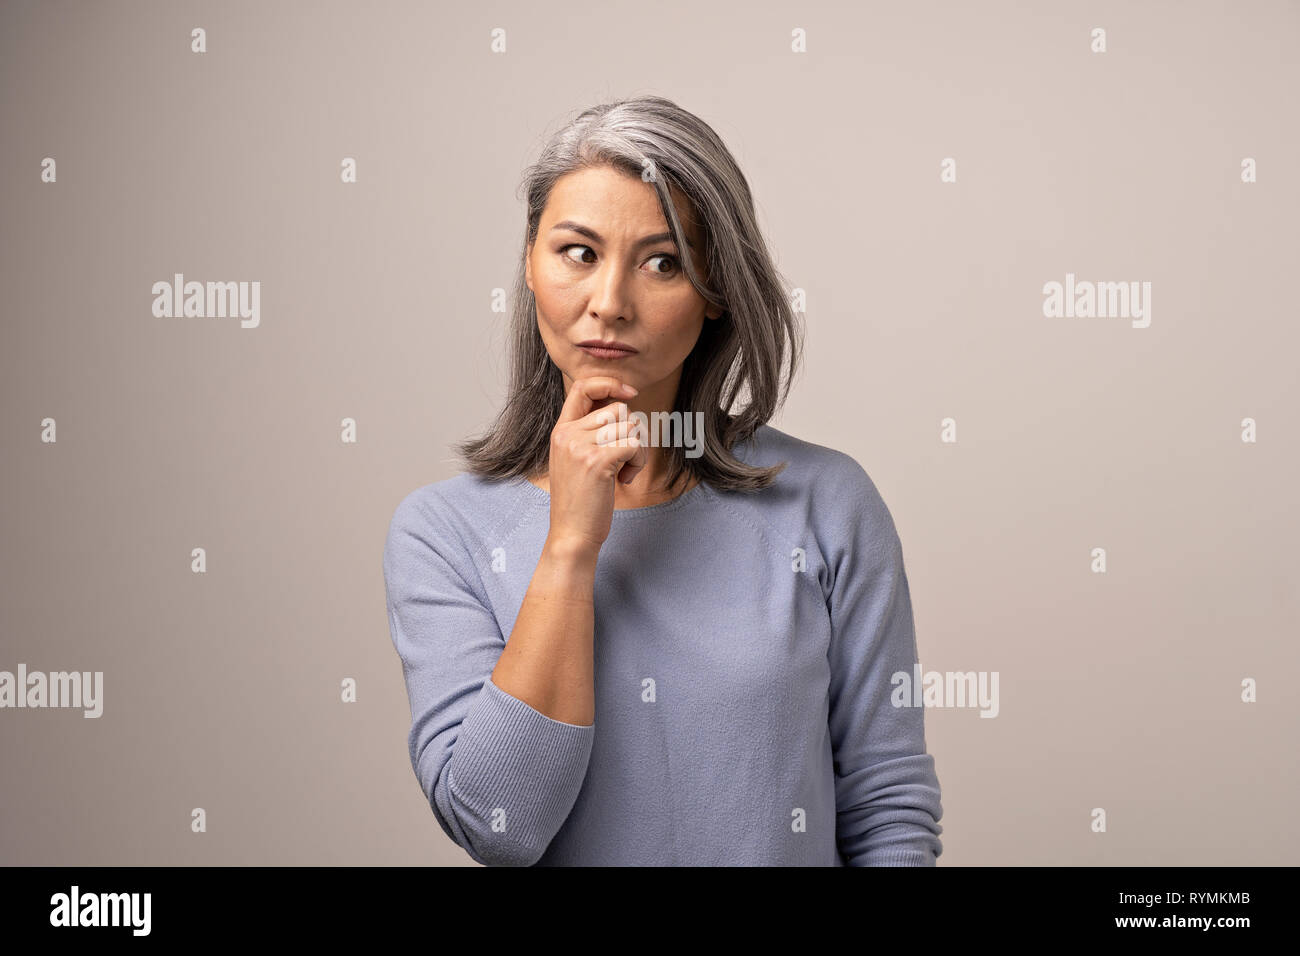 Asian woman is touching her chin thinking - Stock Image